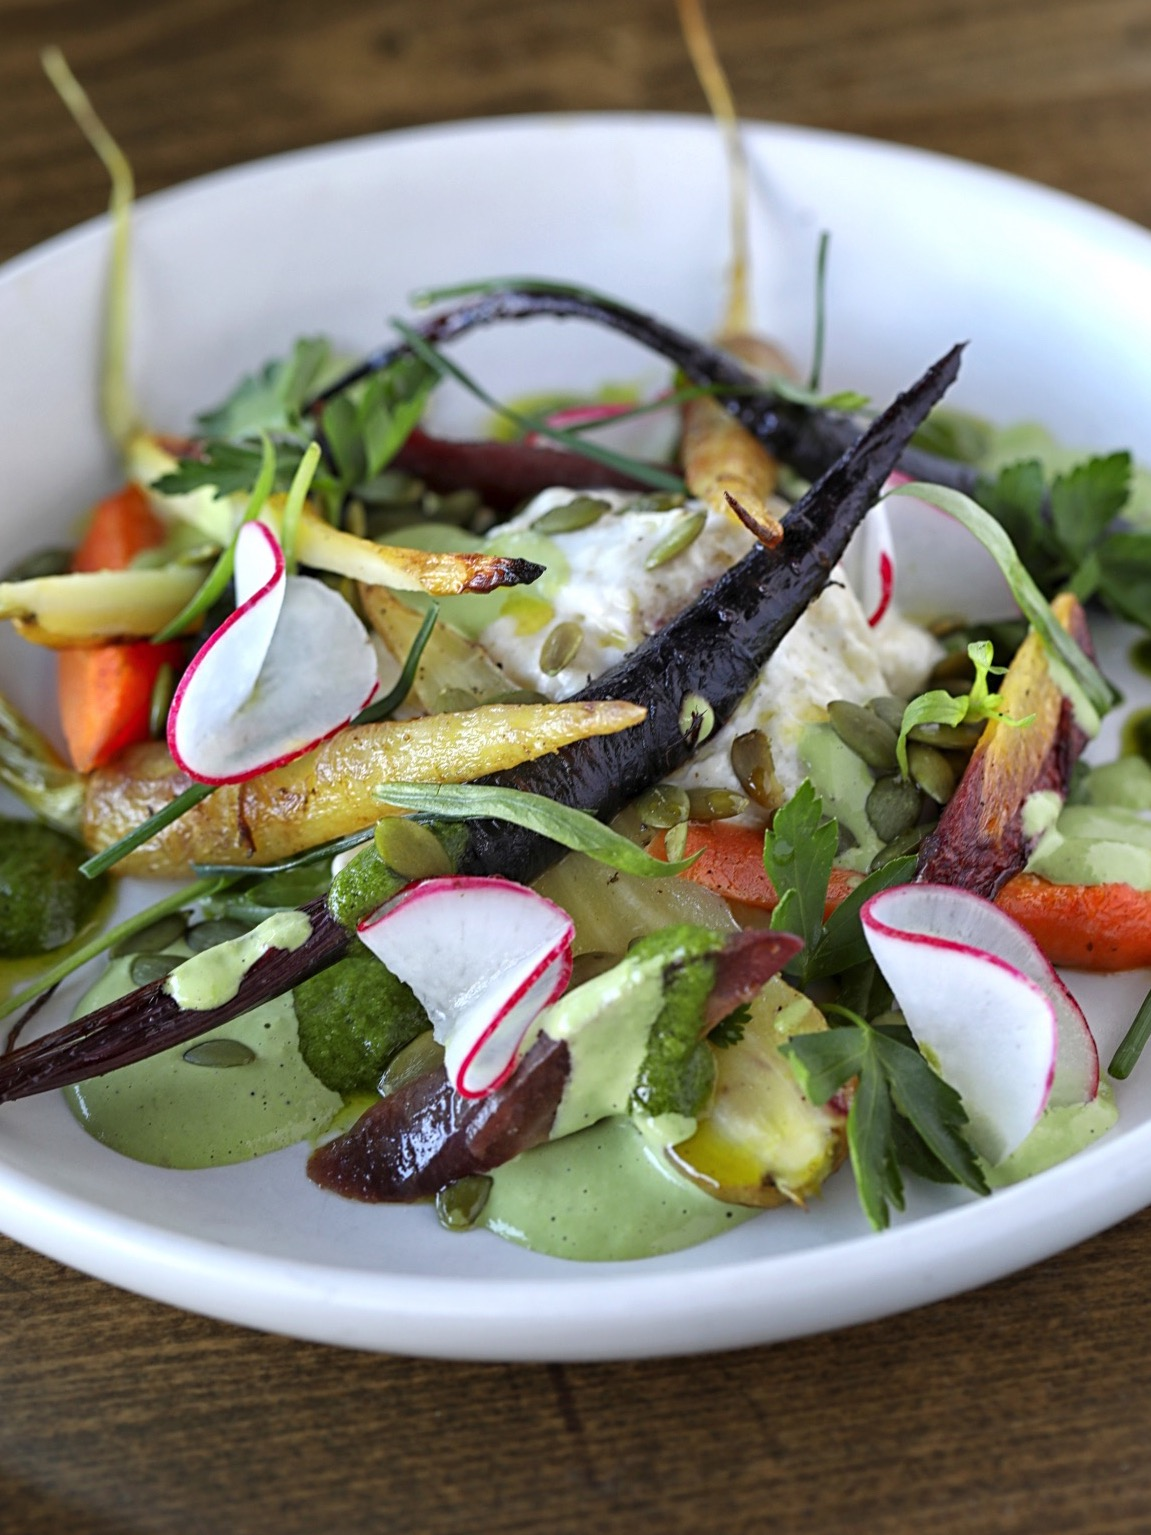 Roasted Heirloom Carrot Salad at Beaumont's Eatery